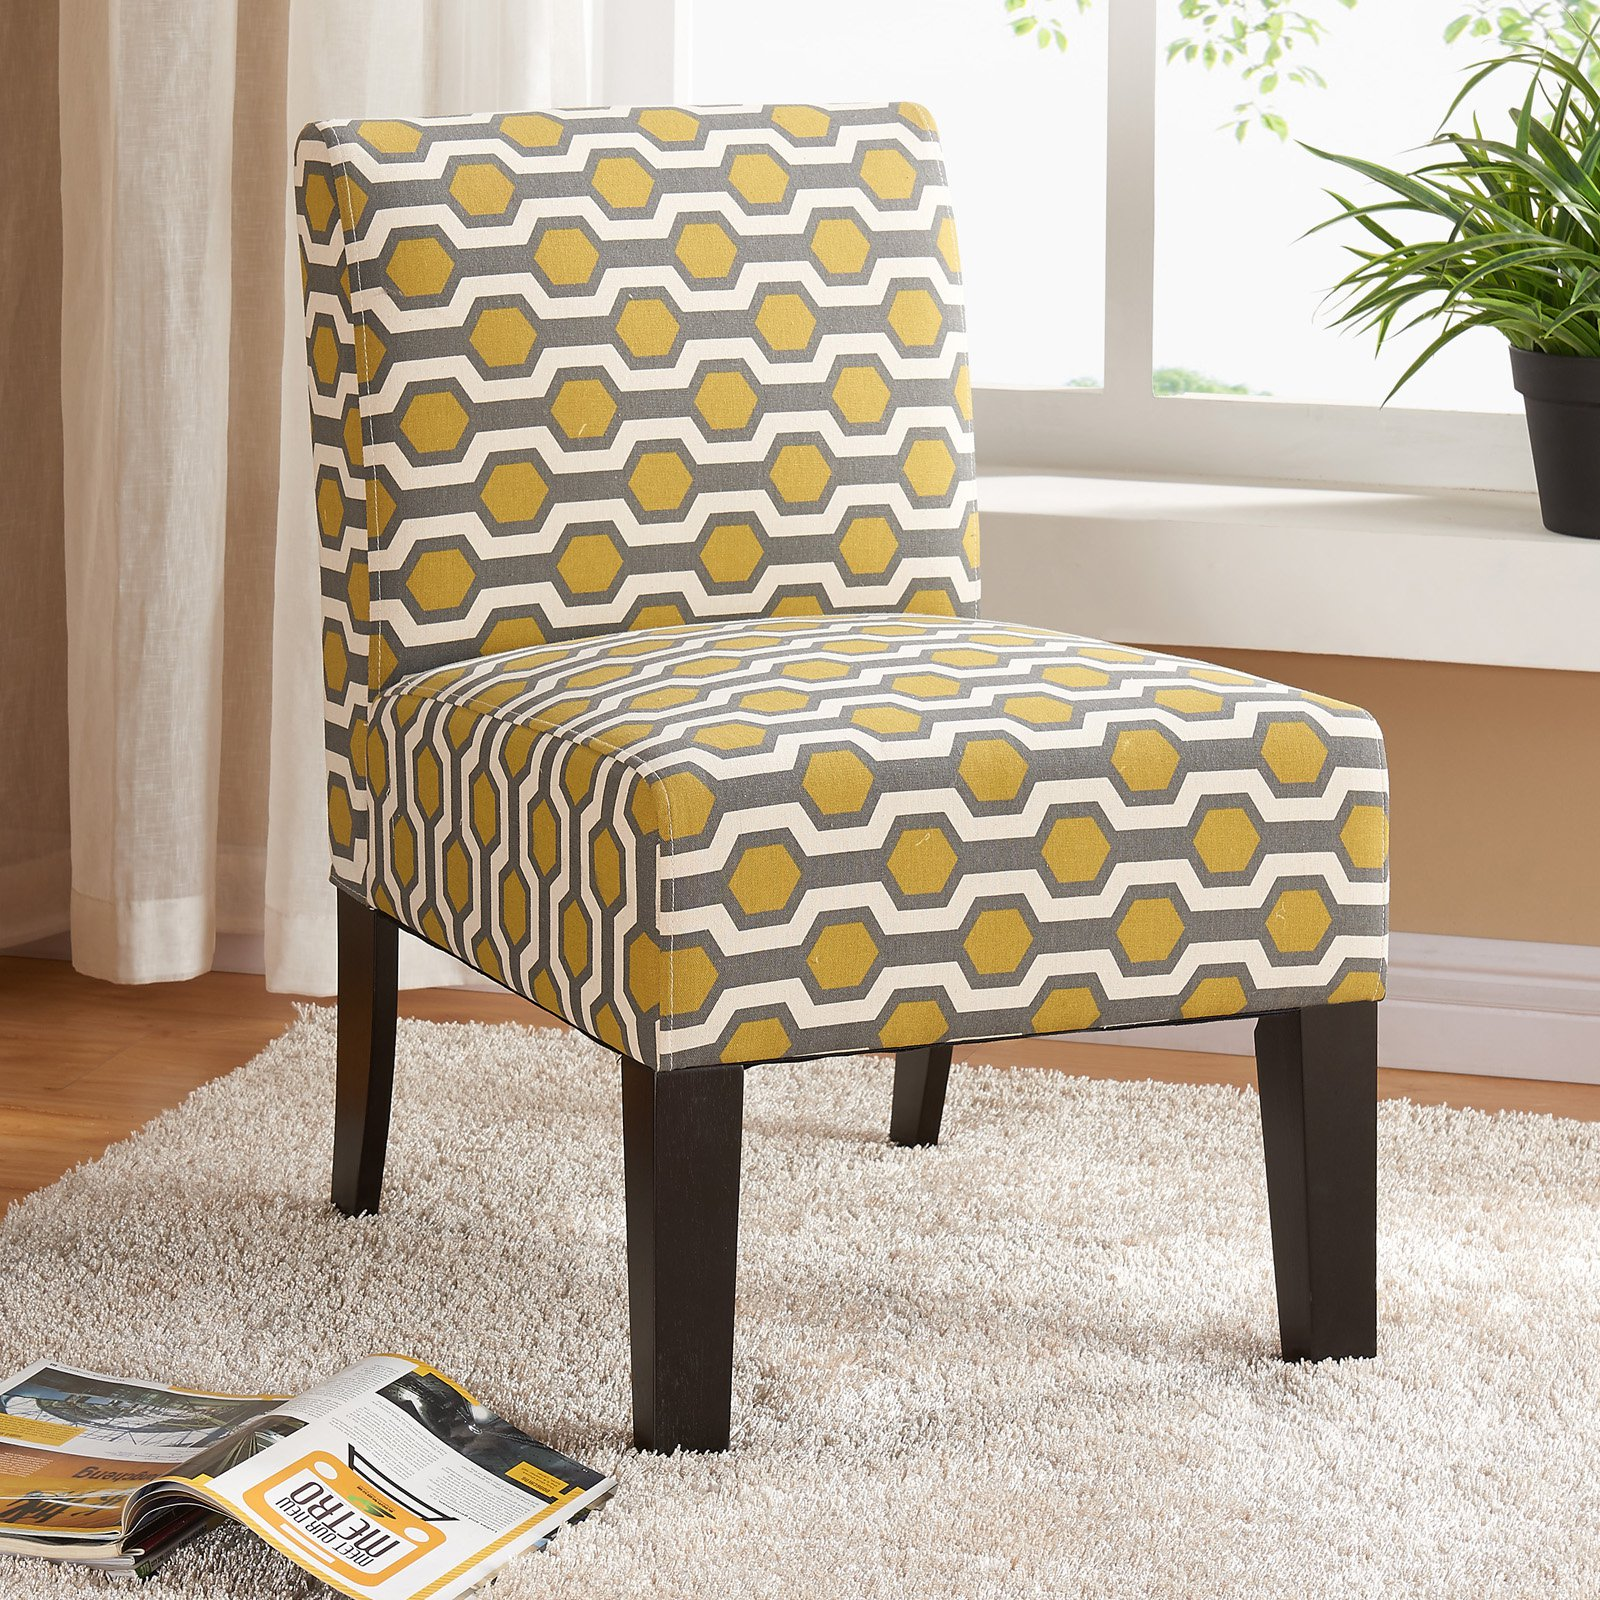 Allegro Side Chair - Gray/Yellow Hex